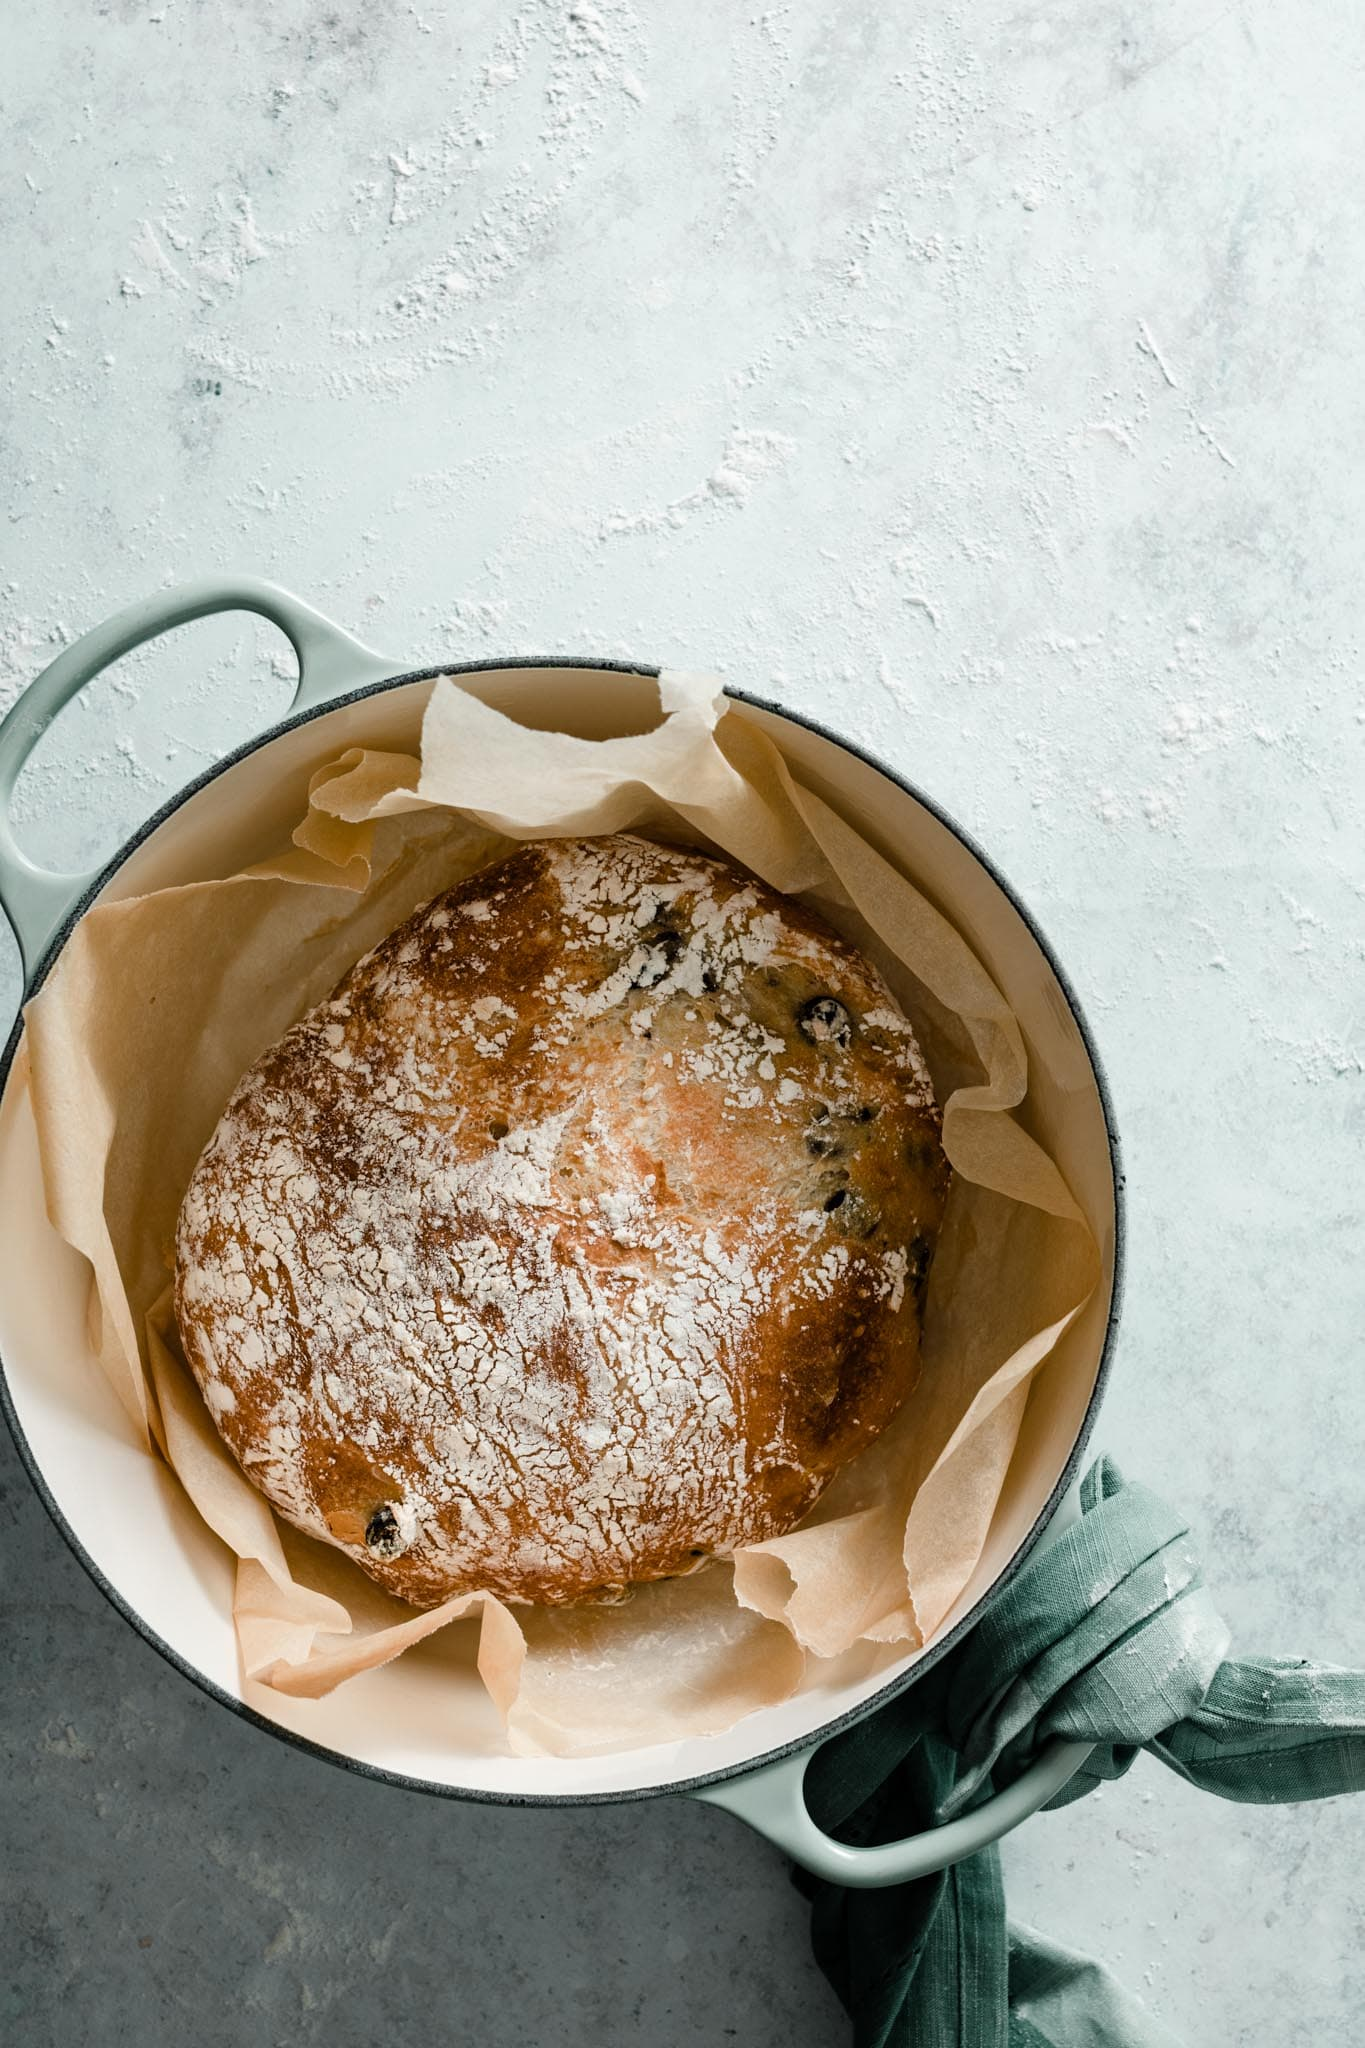 Dutch Oven no knead olive bread recipe.